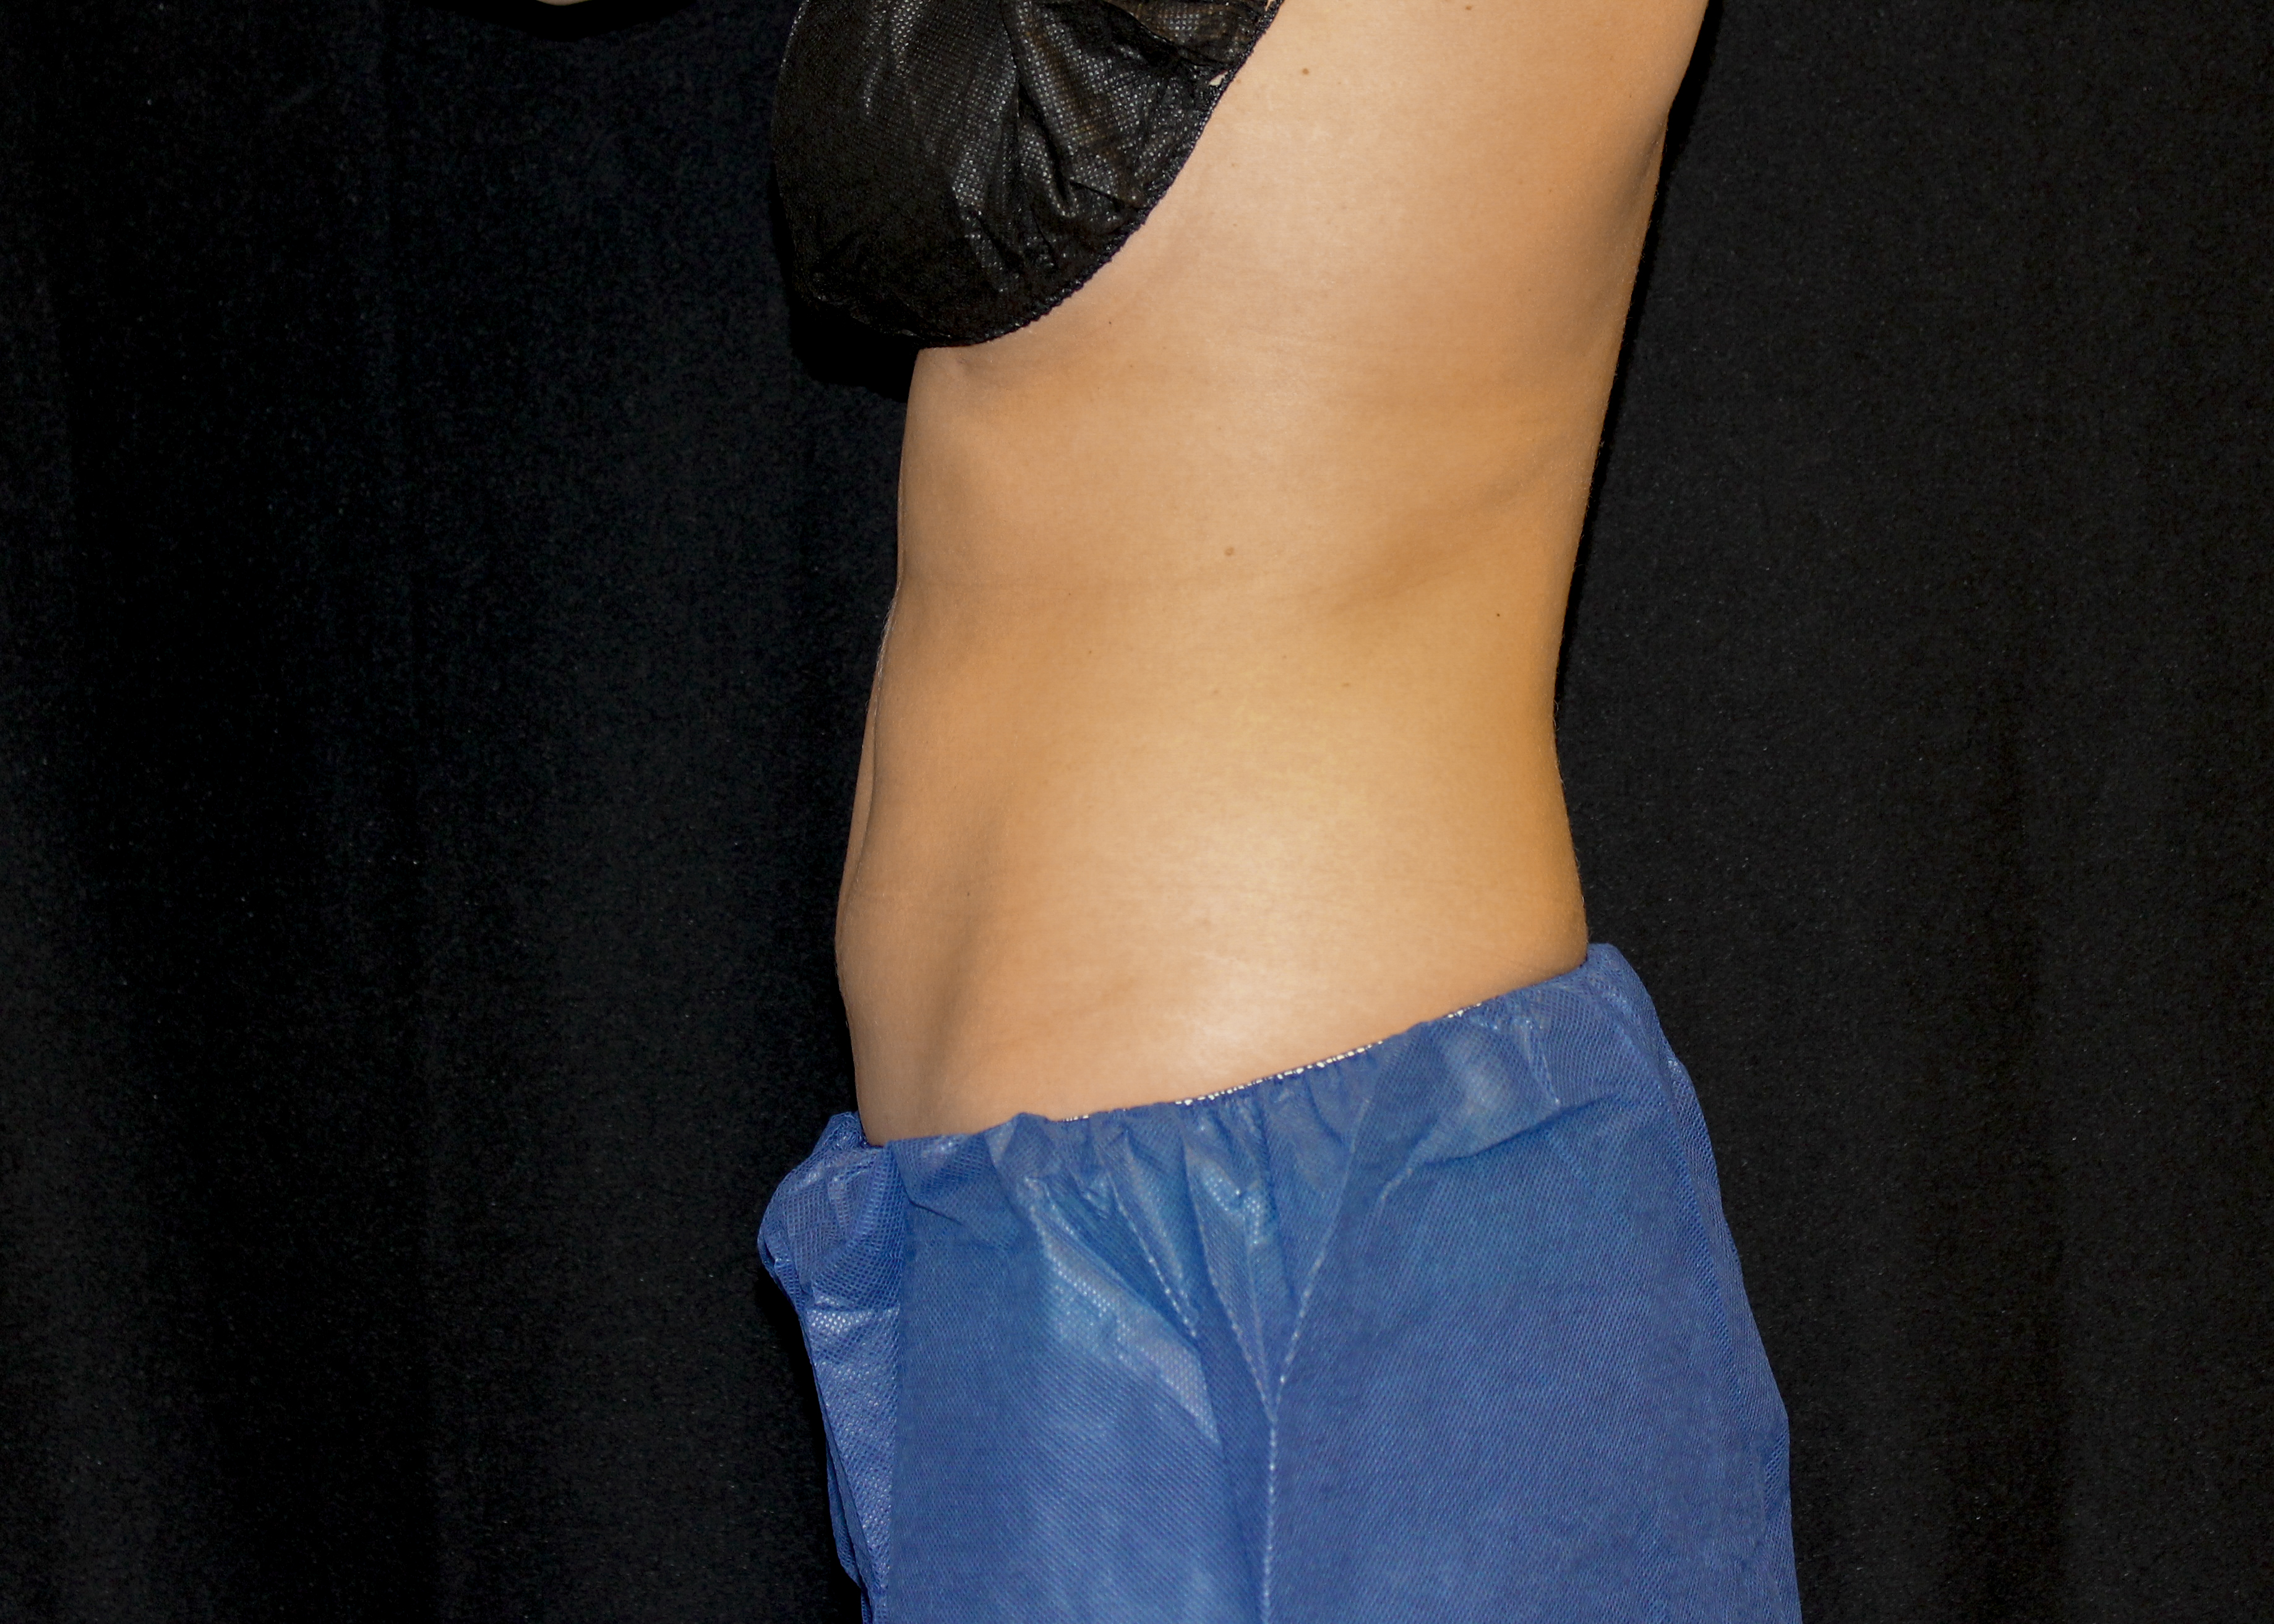 CoolSculpting® Abdomen Before and After Pictures Cape Girardeau, MO